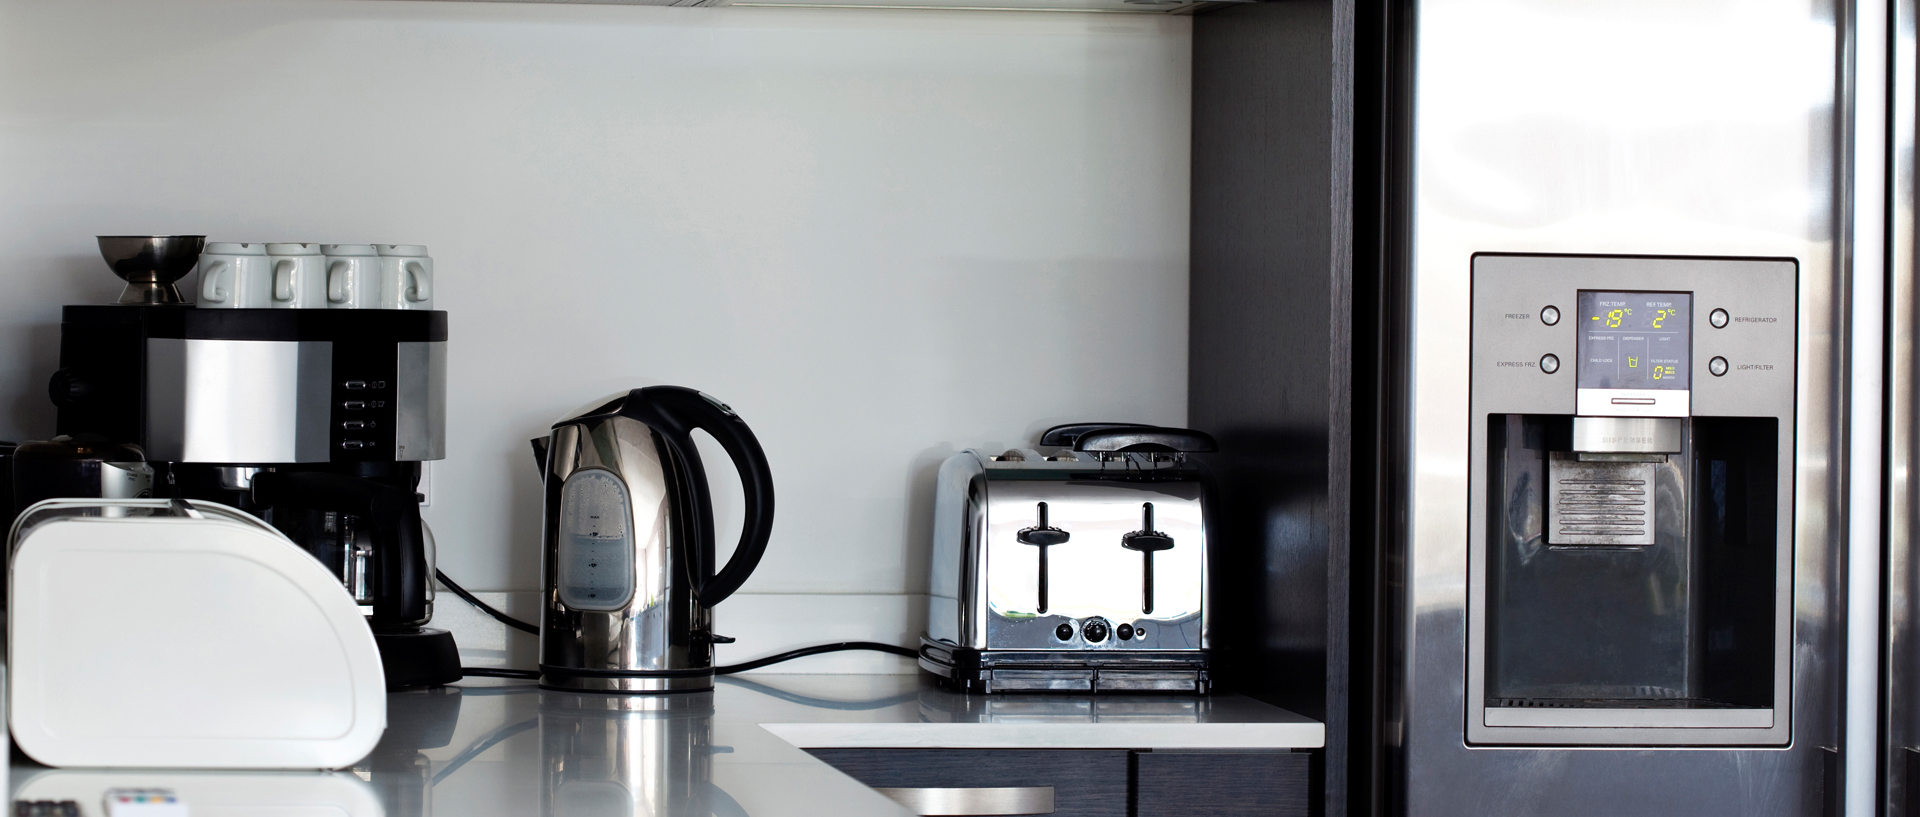 San Diego Home Cleaning Service : Guide to Small Appliance Care -